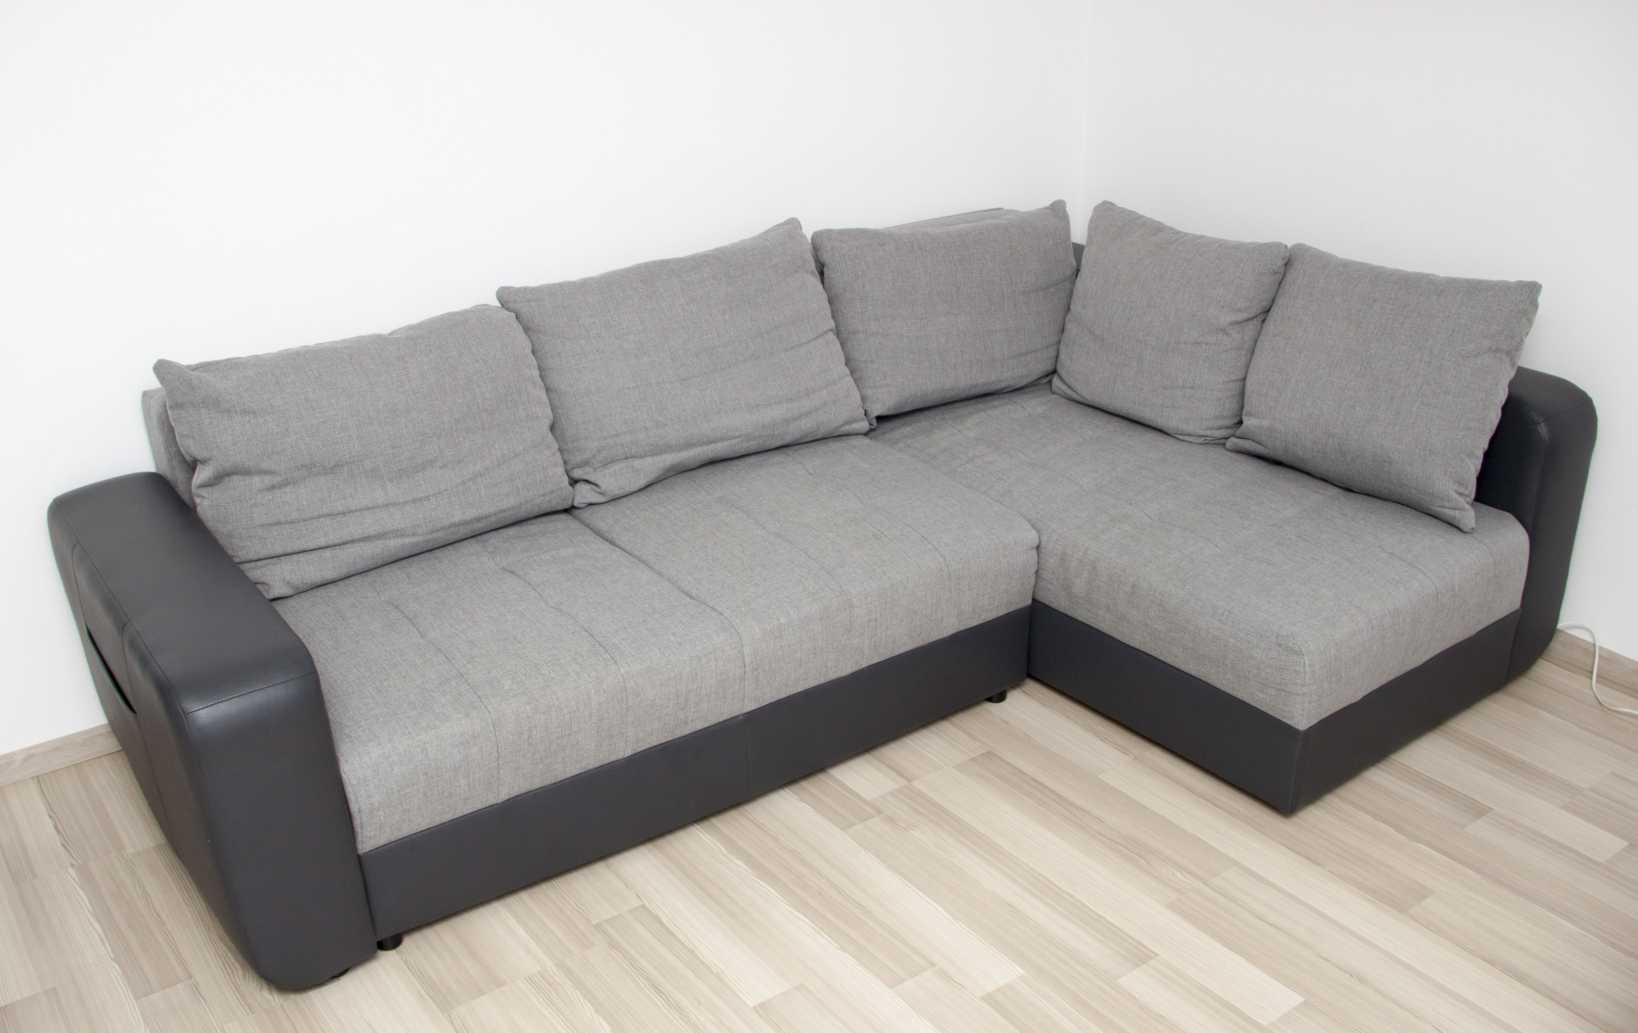 sofa m�odzieżowa rozk�adana agata meble review home co